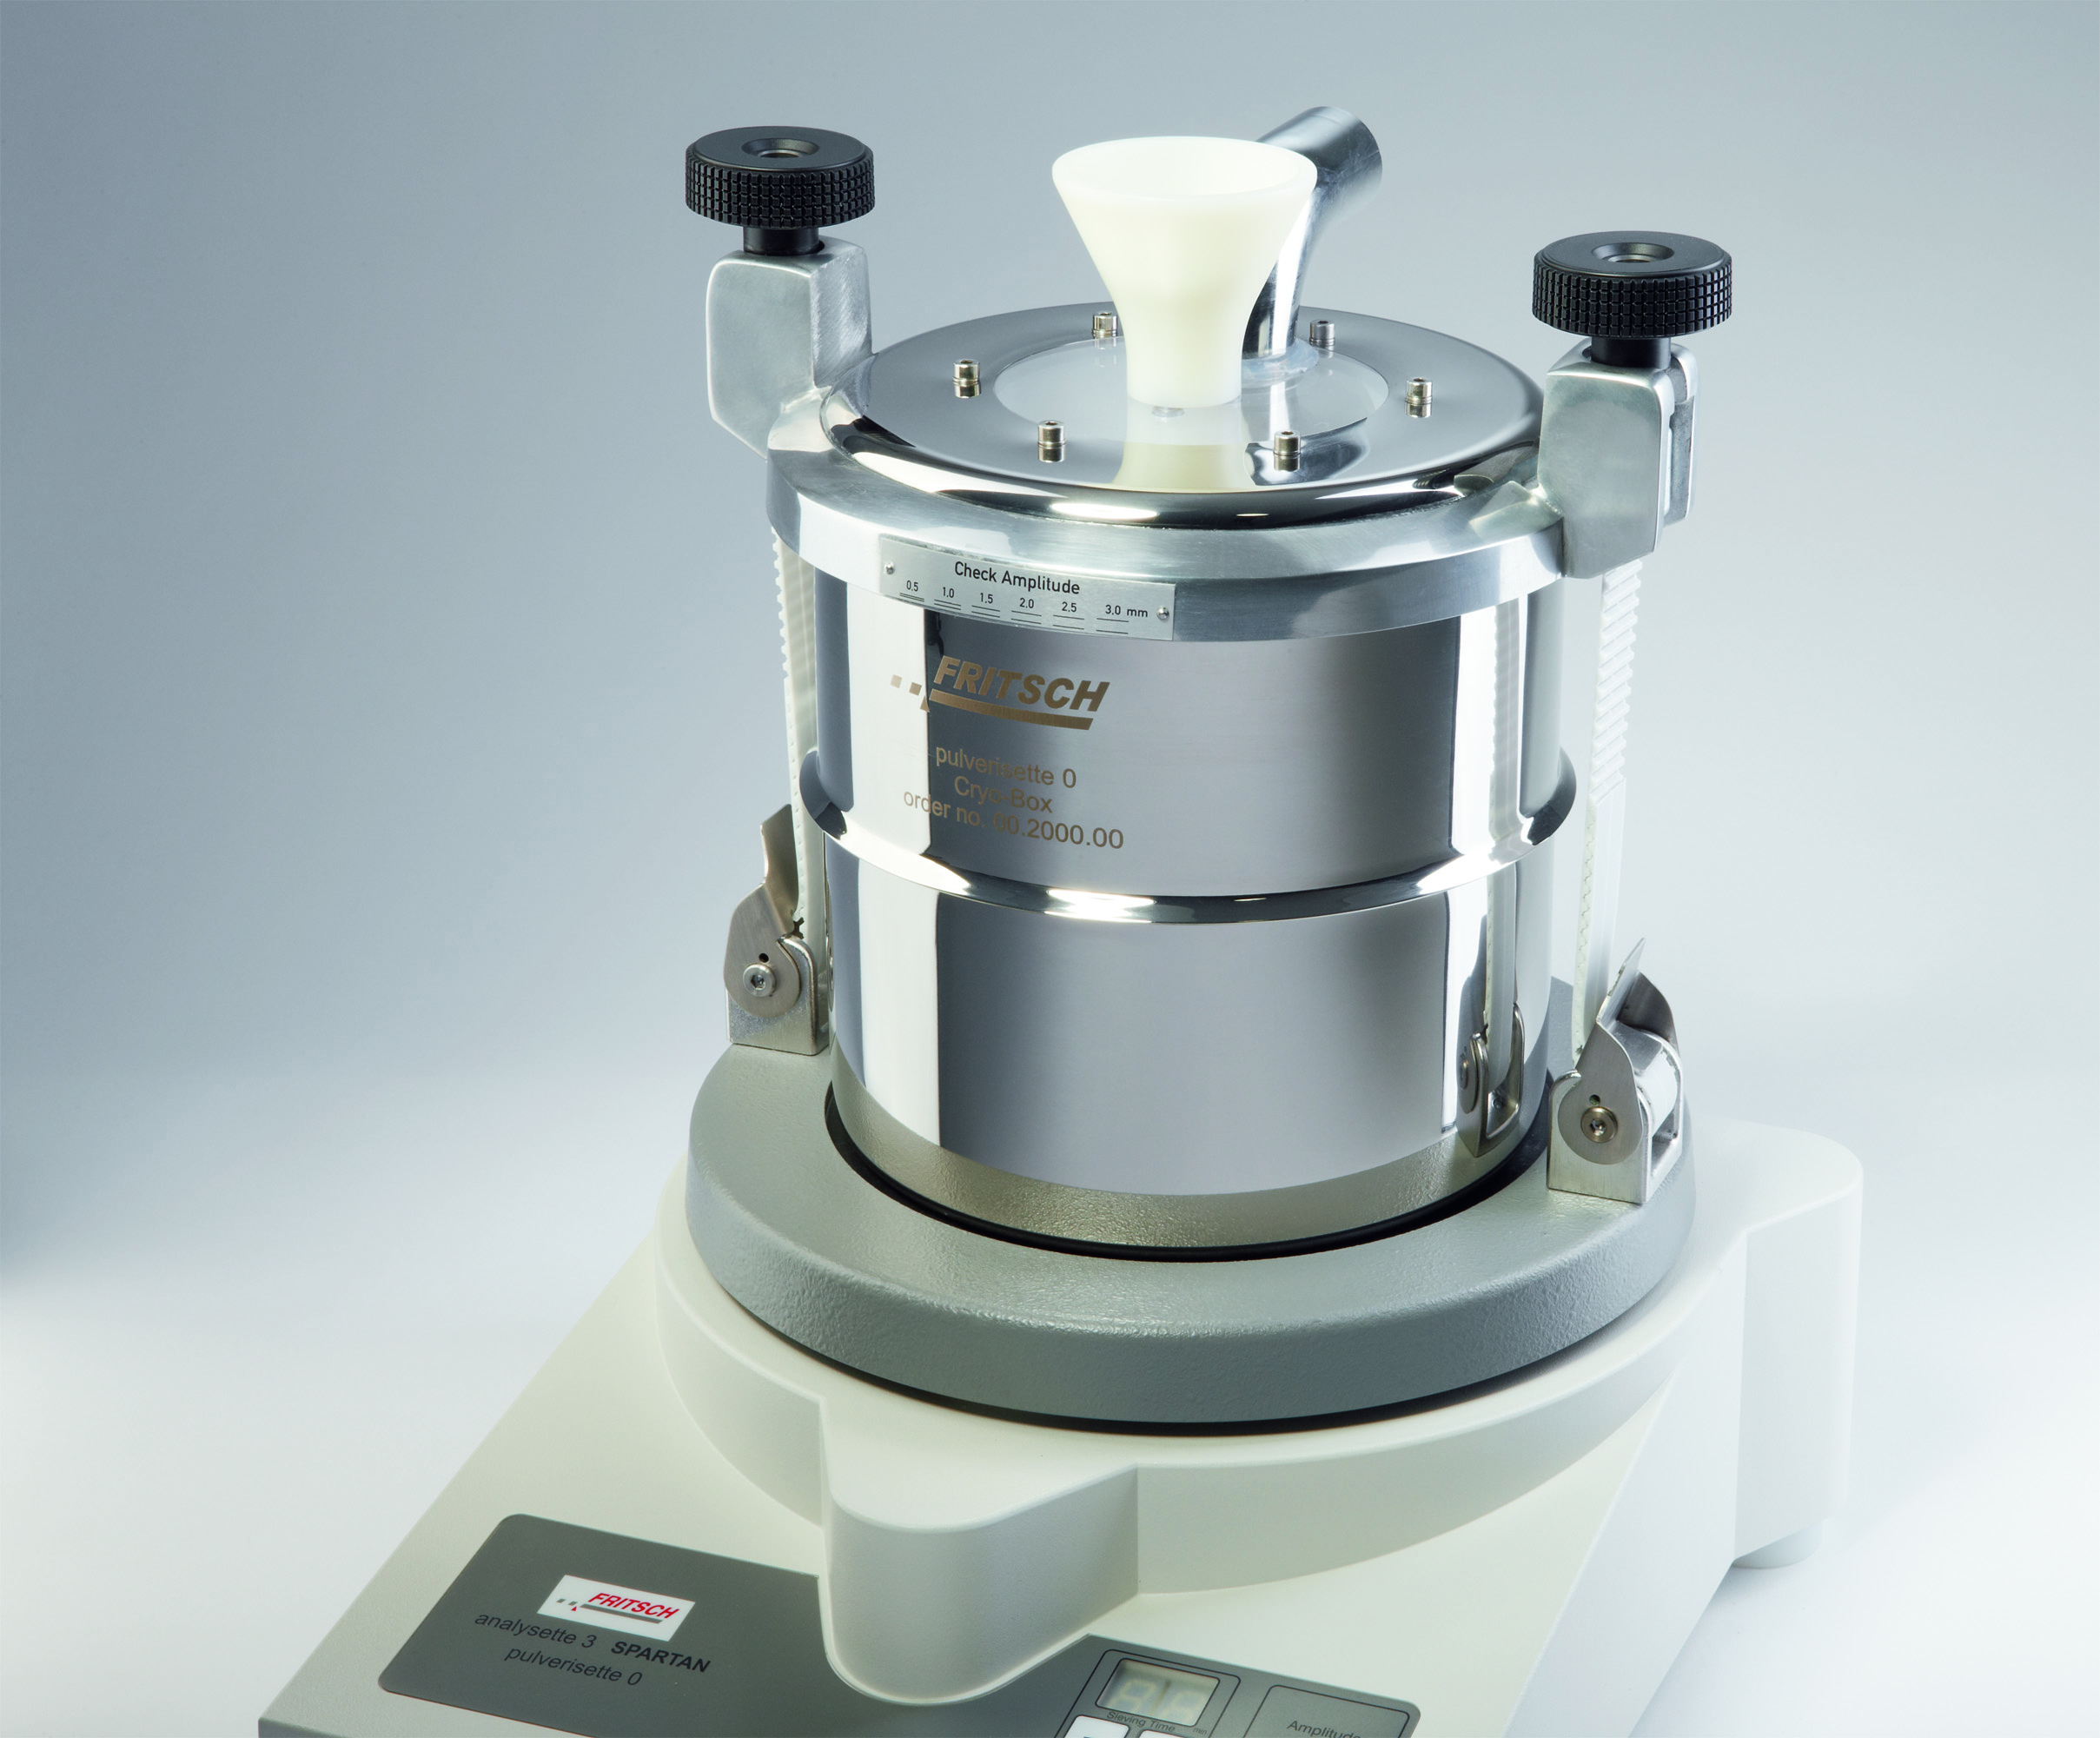 cryogenic grinding research paper Cryogenic grinding - free research paper on cryogenic grinding cryogenic grinding of plant and animal tissue is a technique used by microbiologistssamples that.